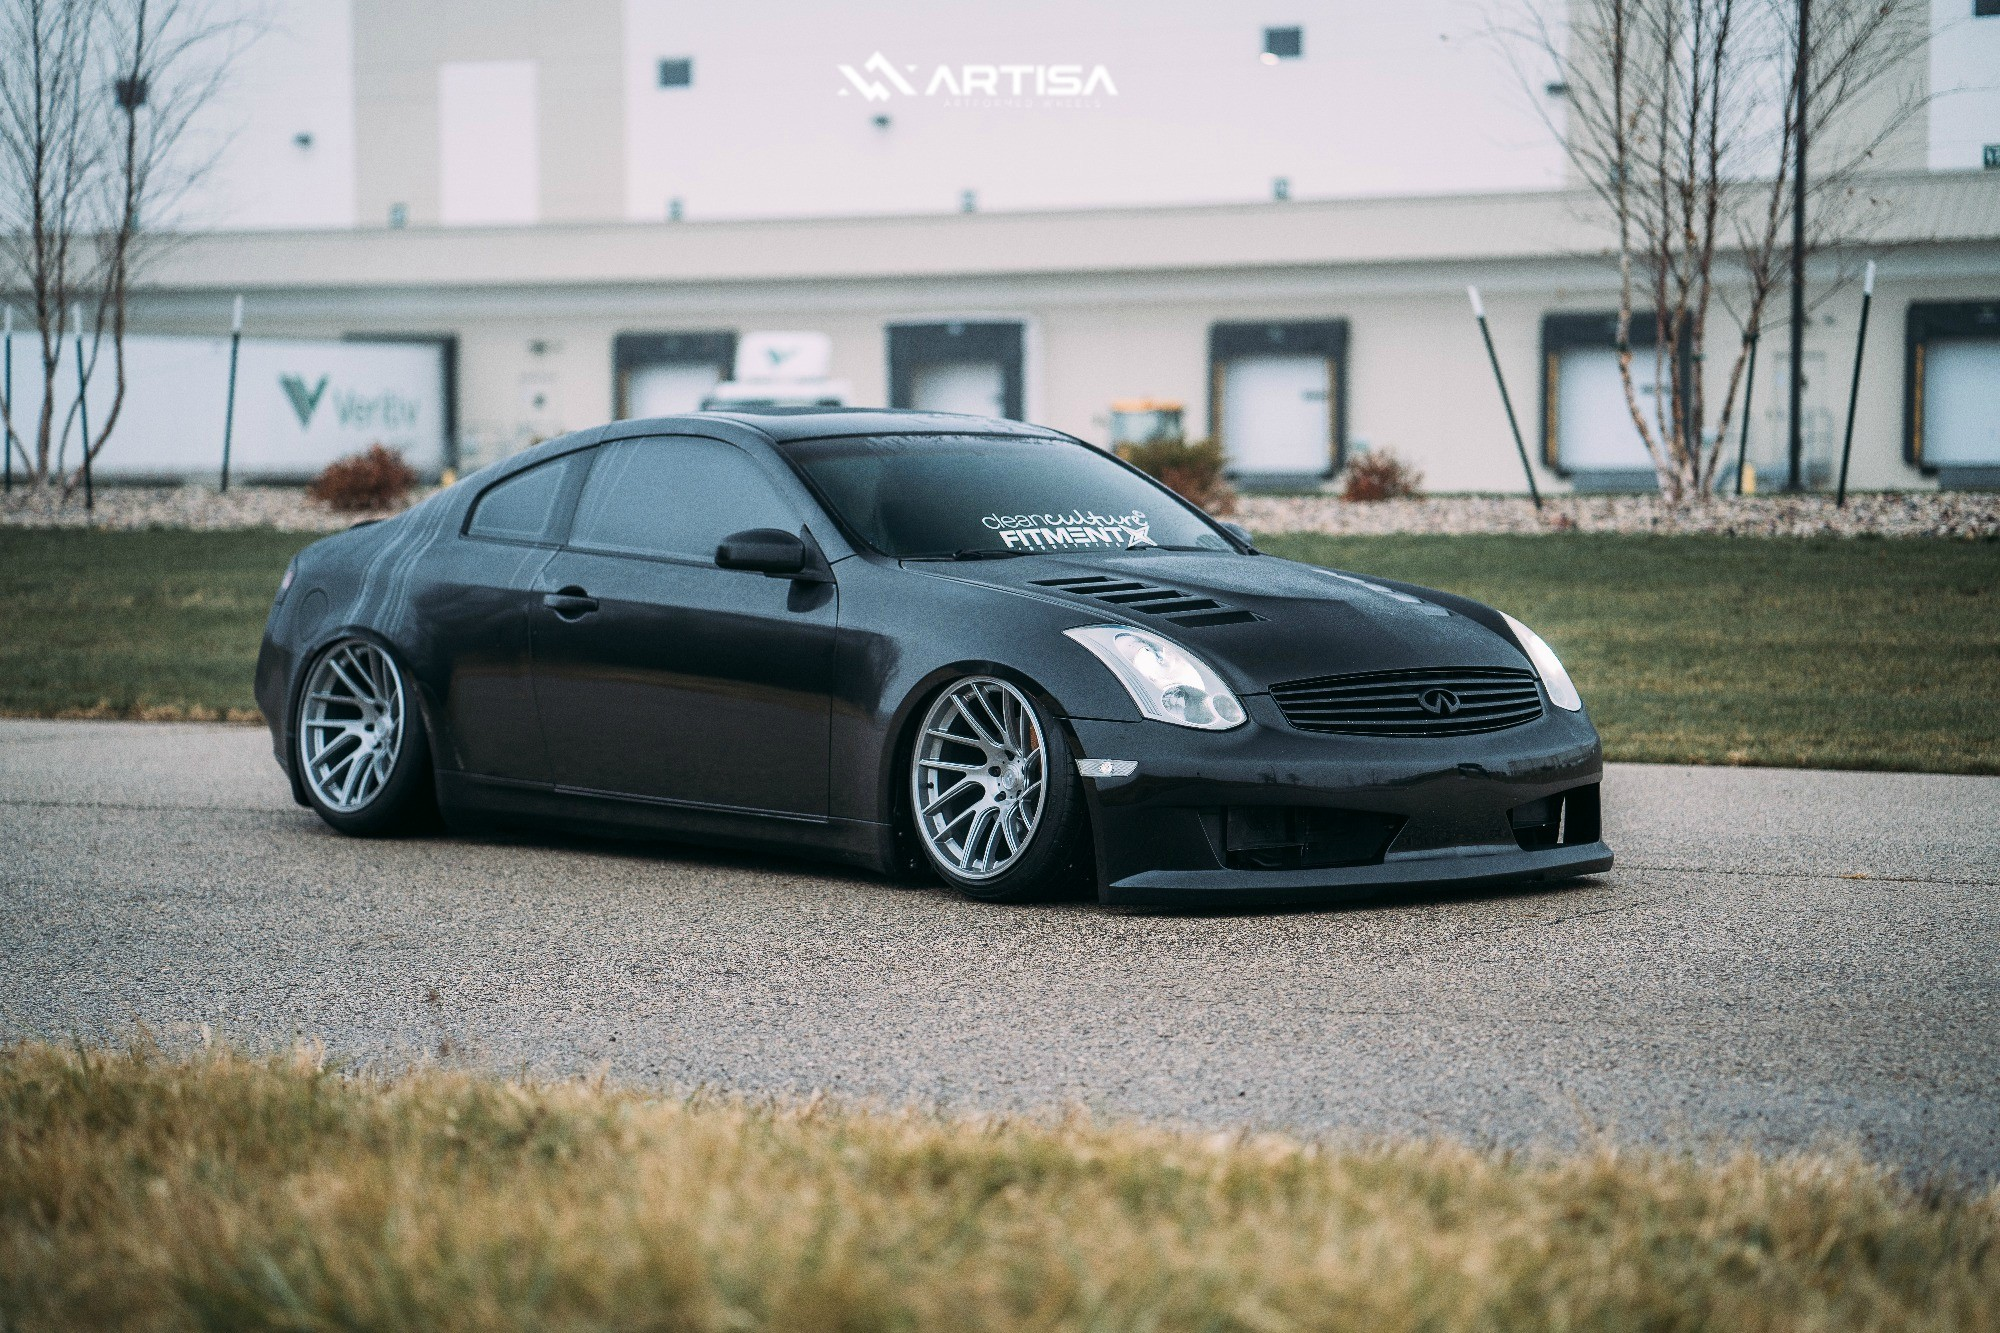 1 2004 G35 Infiniti Rwd 2dr Coupe W Leather 35l 6cyl 6m Air Lift Performance Air Suspension Artisa Elder Silver